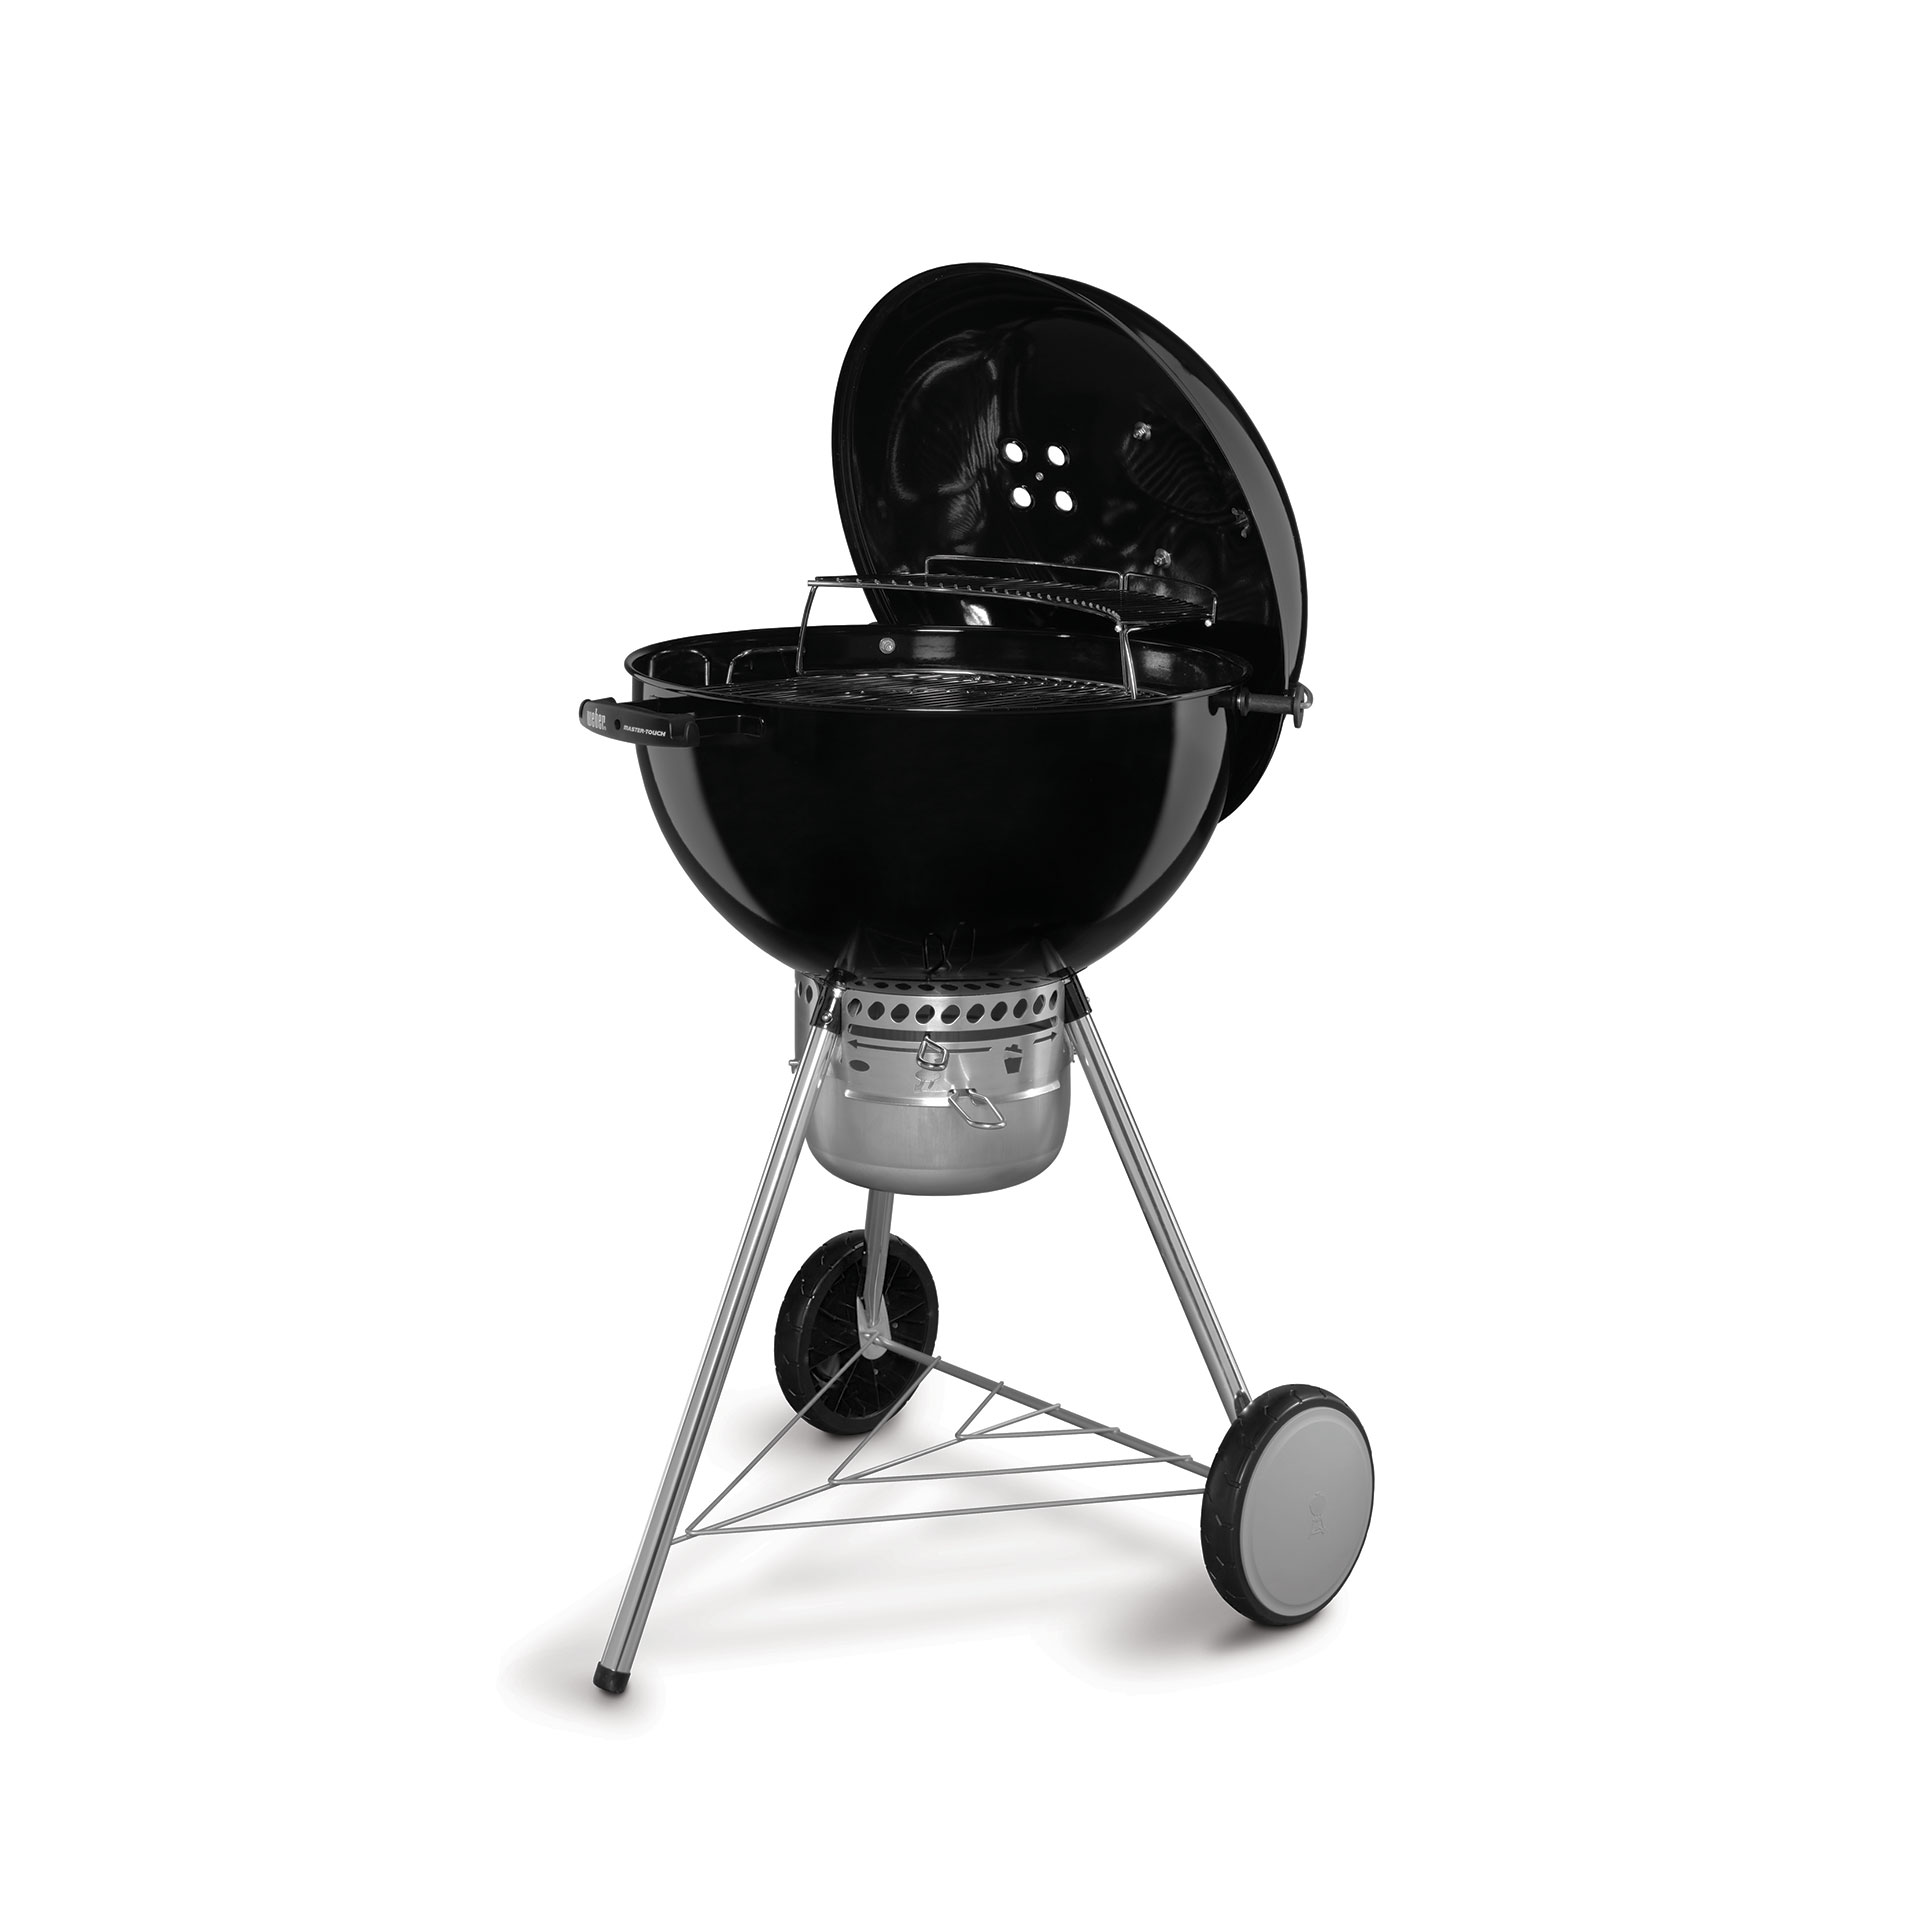 Weber 22 Master Touch Charcoal Grill Leisure Living